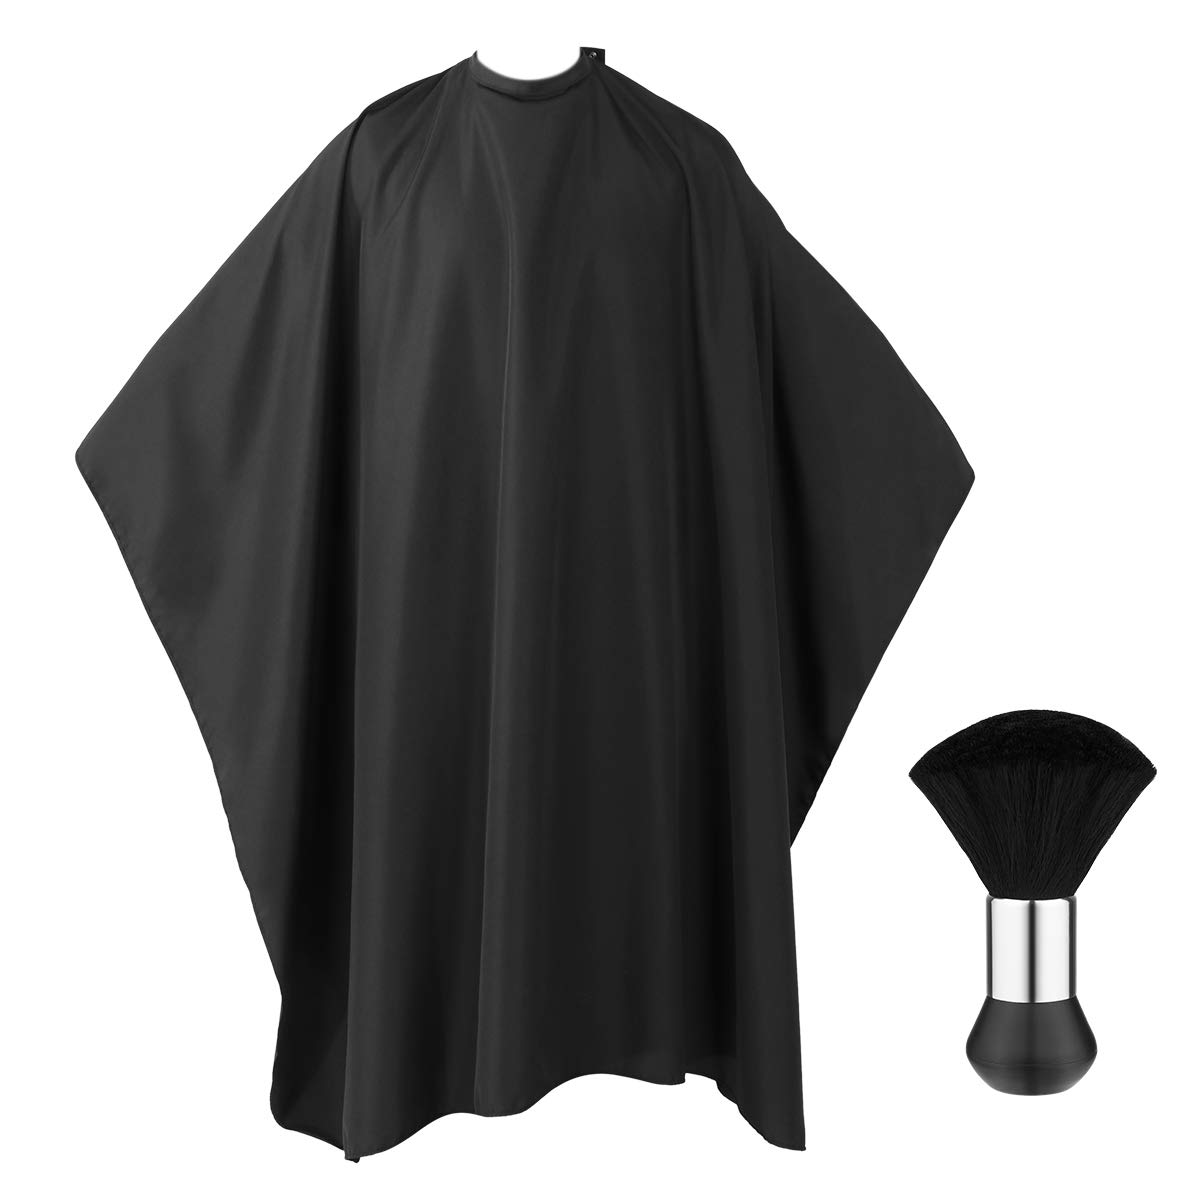 """Frcolor Professional Barber Cape with Snap Closure, Hair Cutting Salon Cape Hairdressing Apron Black, Neck Duster Brush Included - 55"""" x 63"""" : Beauty & Personal Care"""